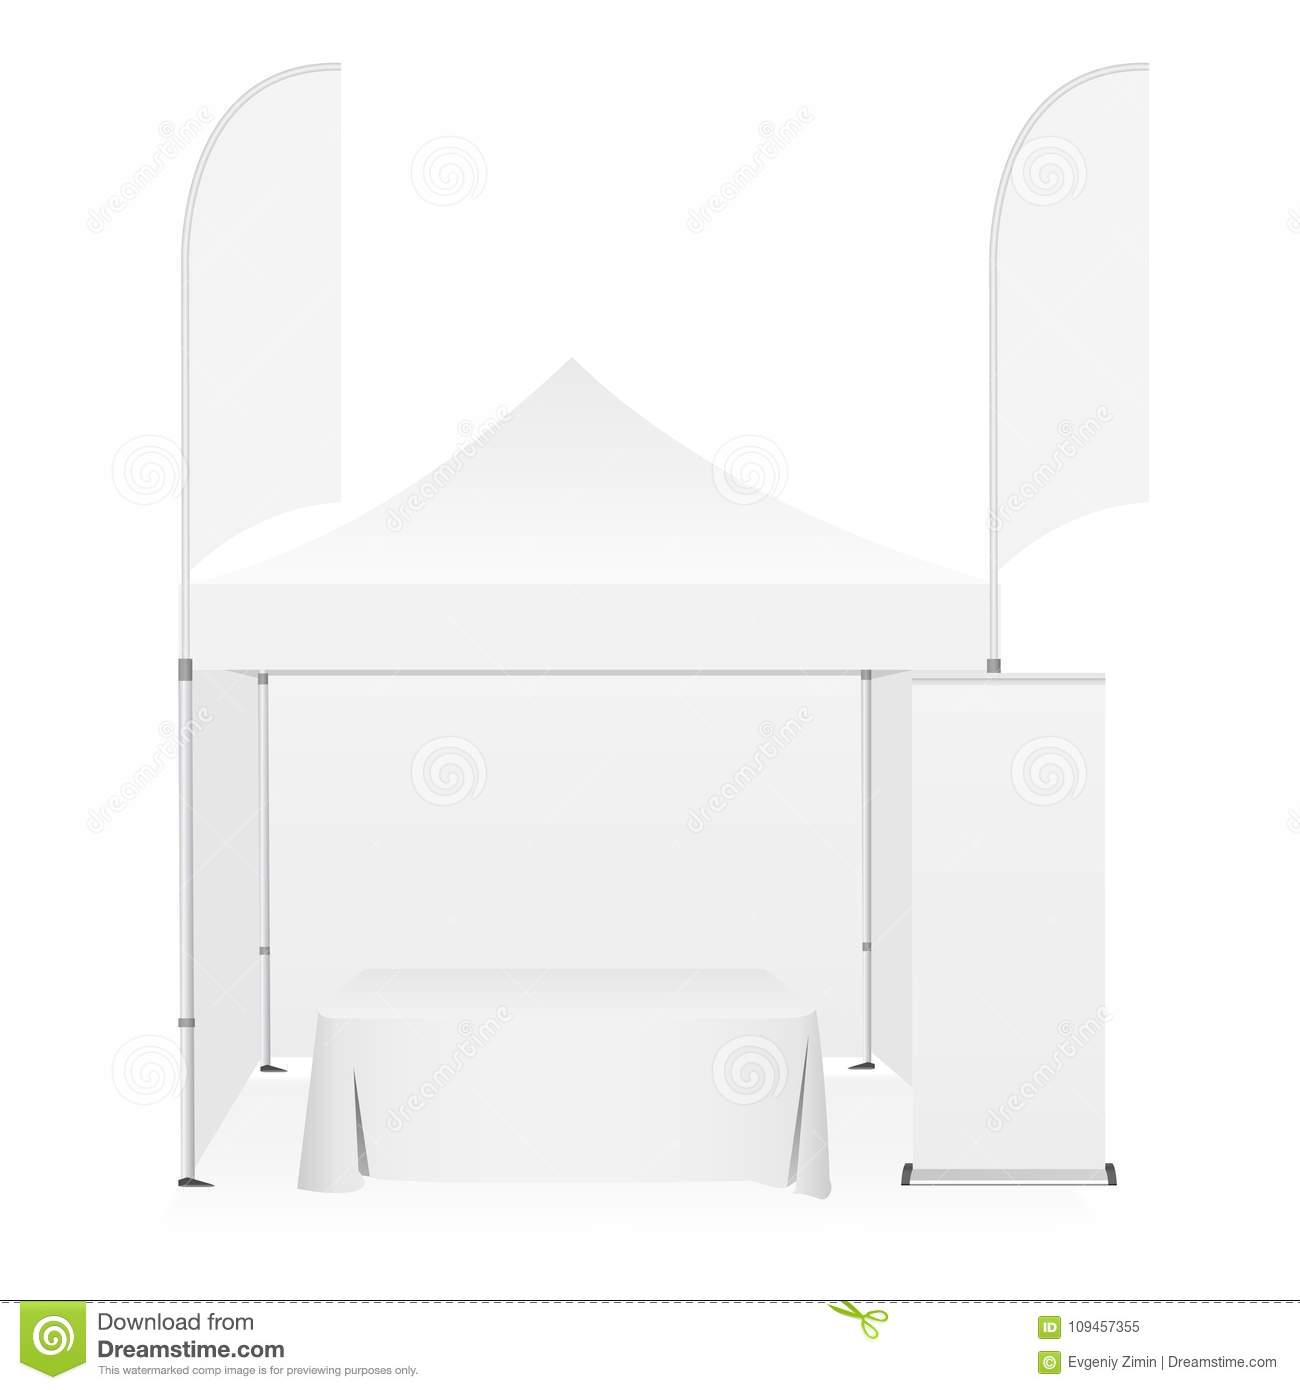 Outdoor canopy tent with two sided banner flags demonstration table and roll-up stand.  sc 1 st  Dreamstime.com & Outdoor Canopy Tent With Two Sided Banner Flags Demonstration Table ...